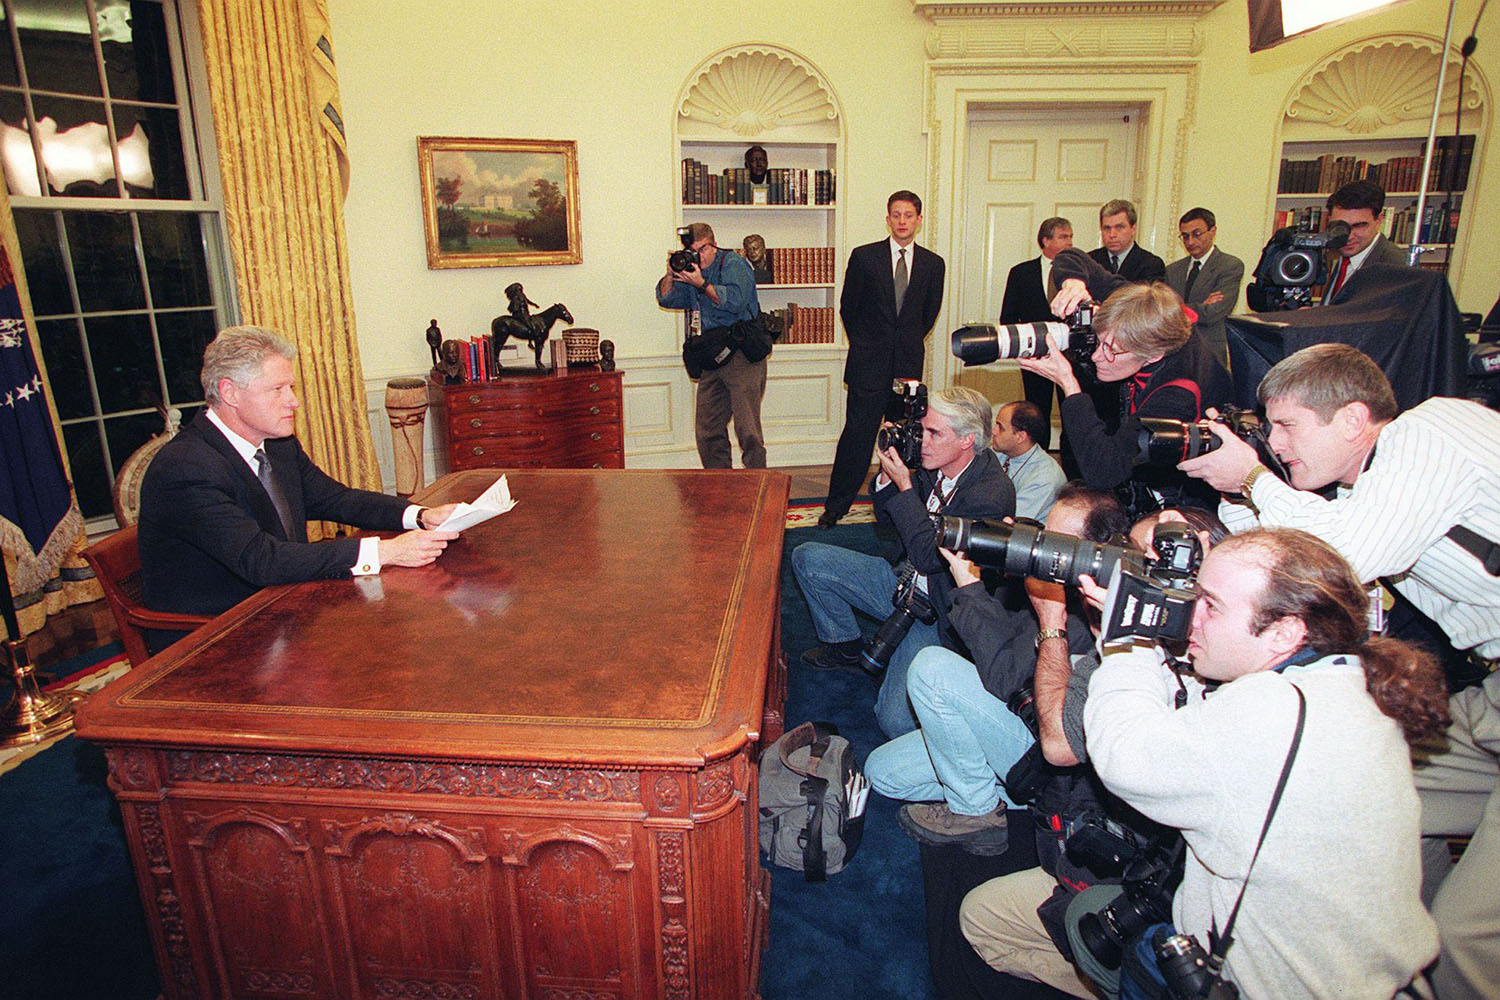 Photographers take pictures of President Bill Clinton as he prepares to address the nation from the White House on December 16, 1998.